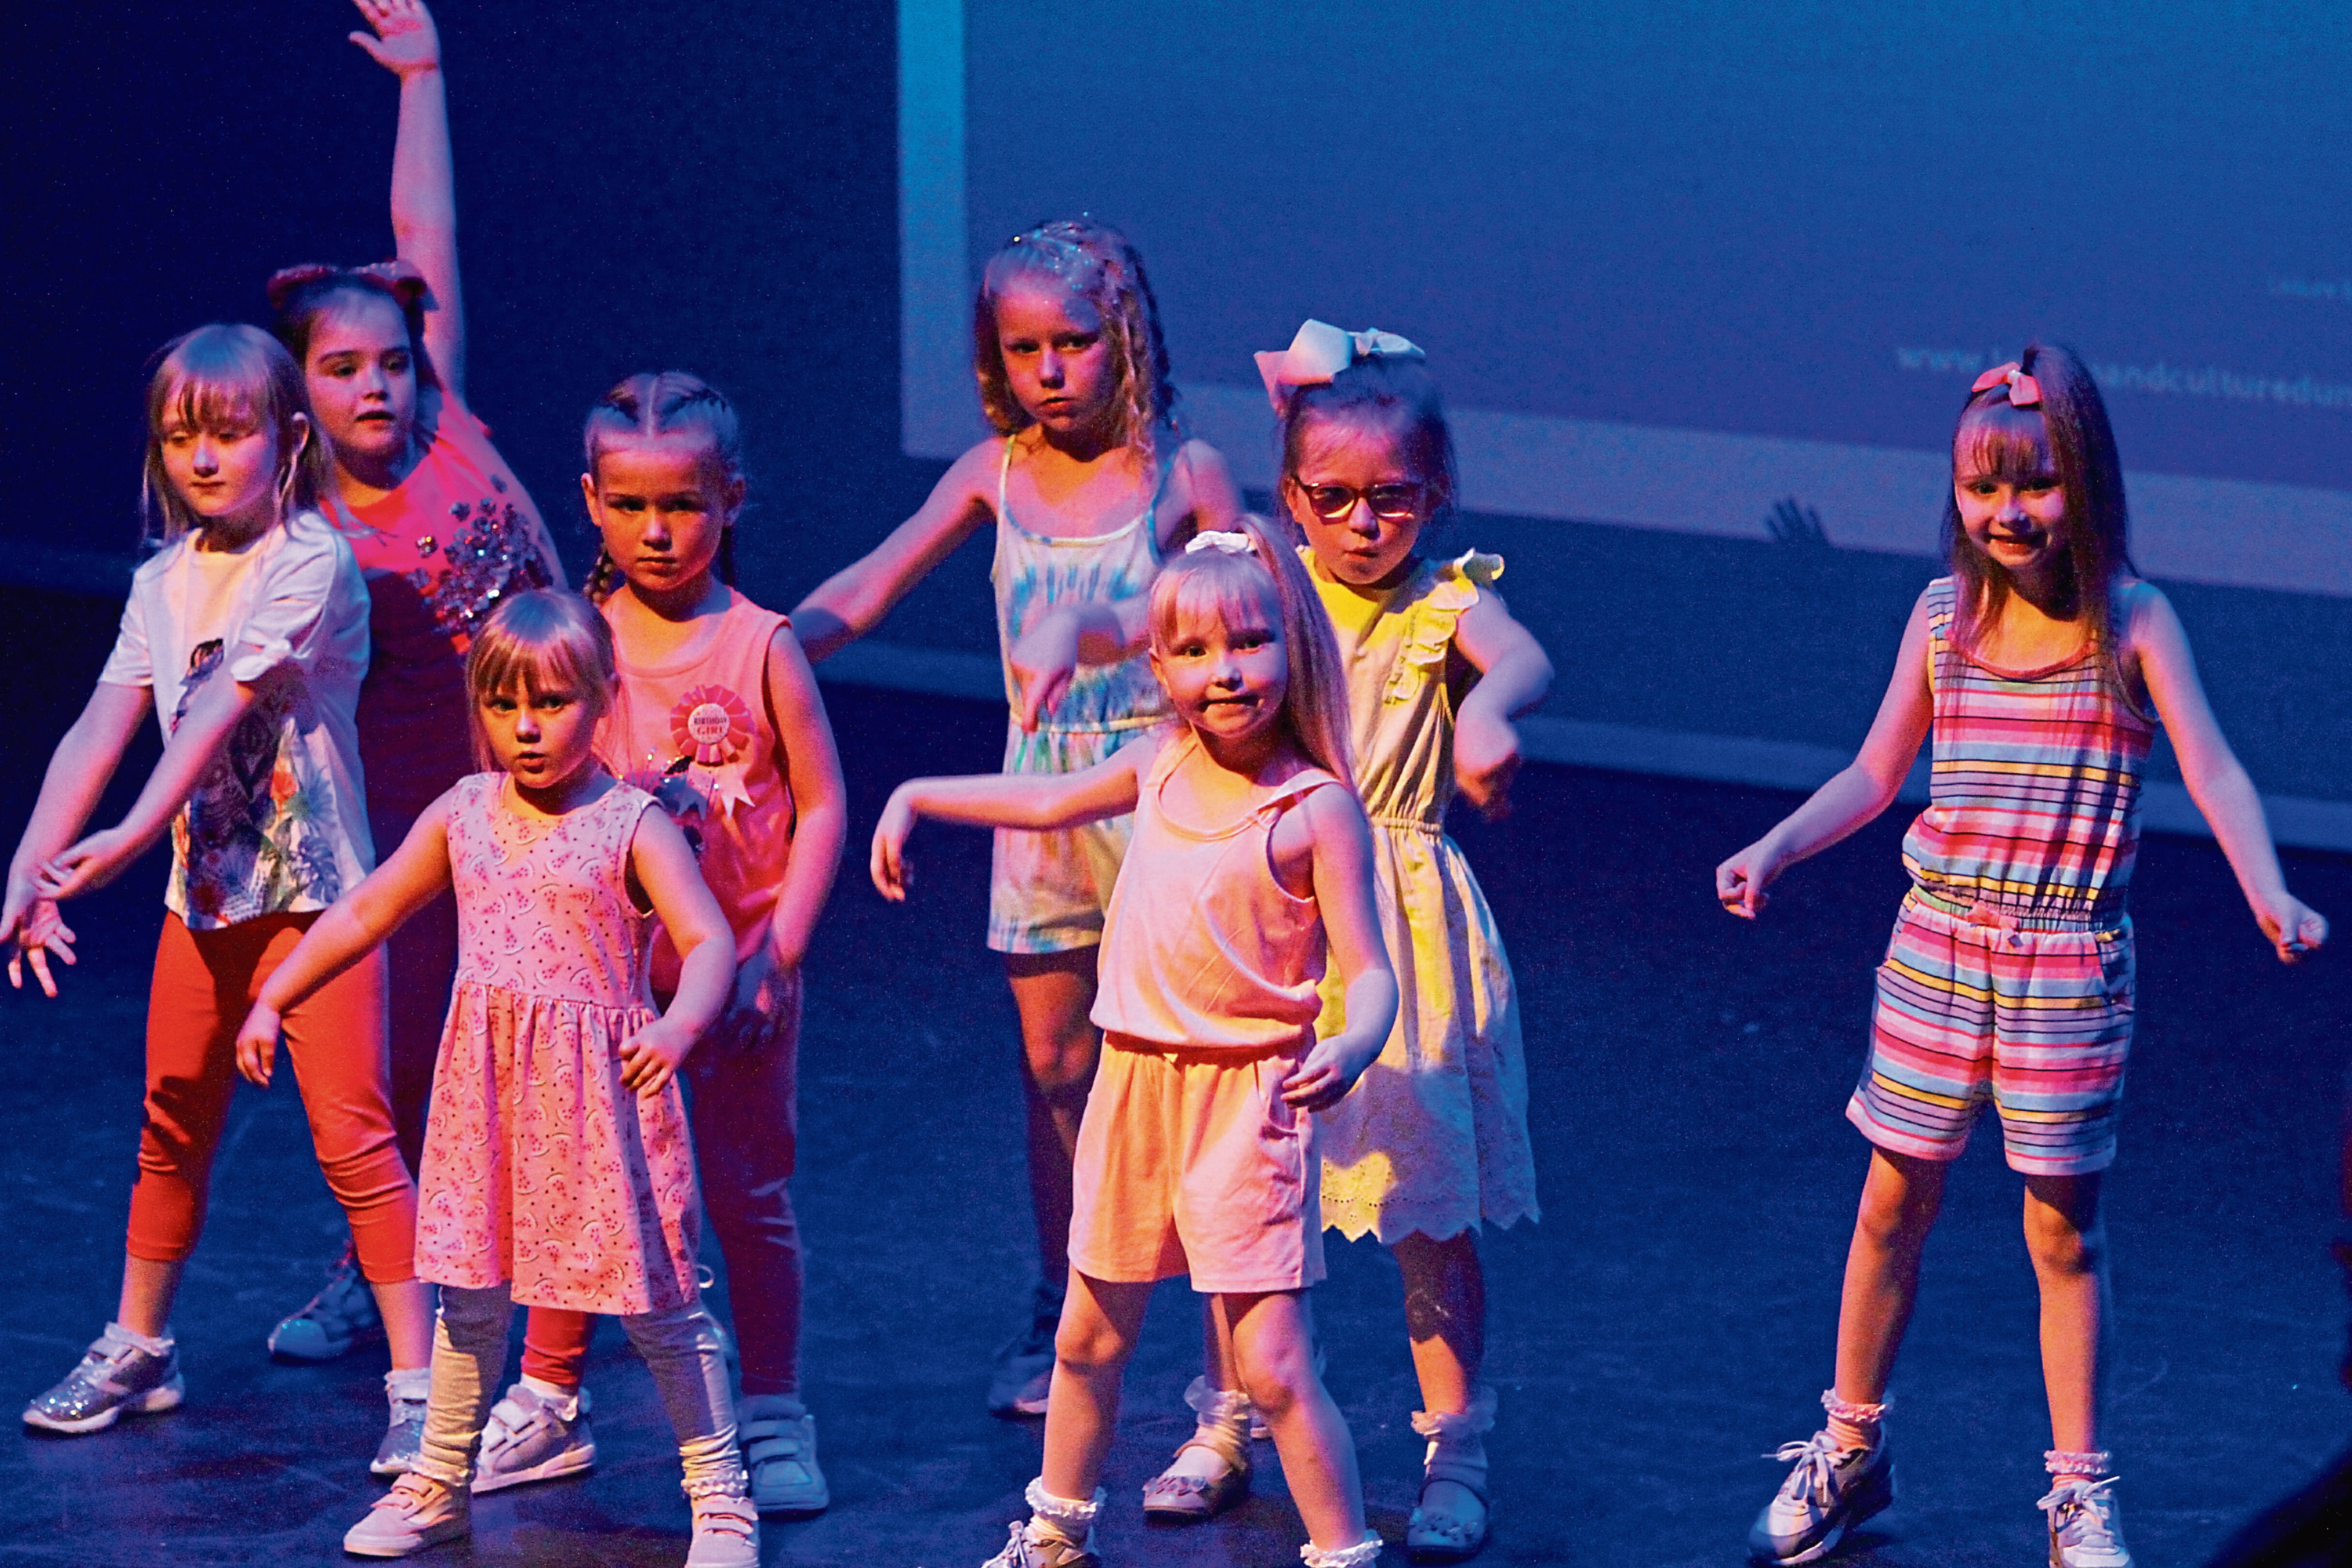 Tele News - Dundee story - Urban Moves Dance Festival.  CR0001534 Picture shows; the group from Craigiebarns PS (P1 - 3) and Urban Junior Moves on stage, at the Urban Moves Dance Festival, at the Gardyne Theatre tonight. Saturday 26th May 2018.